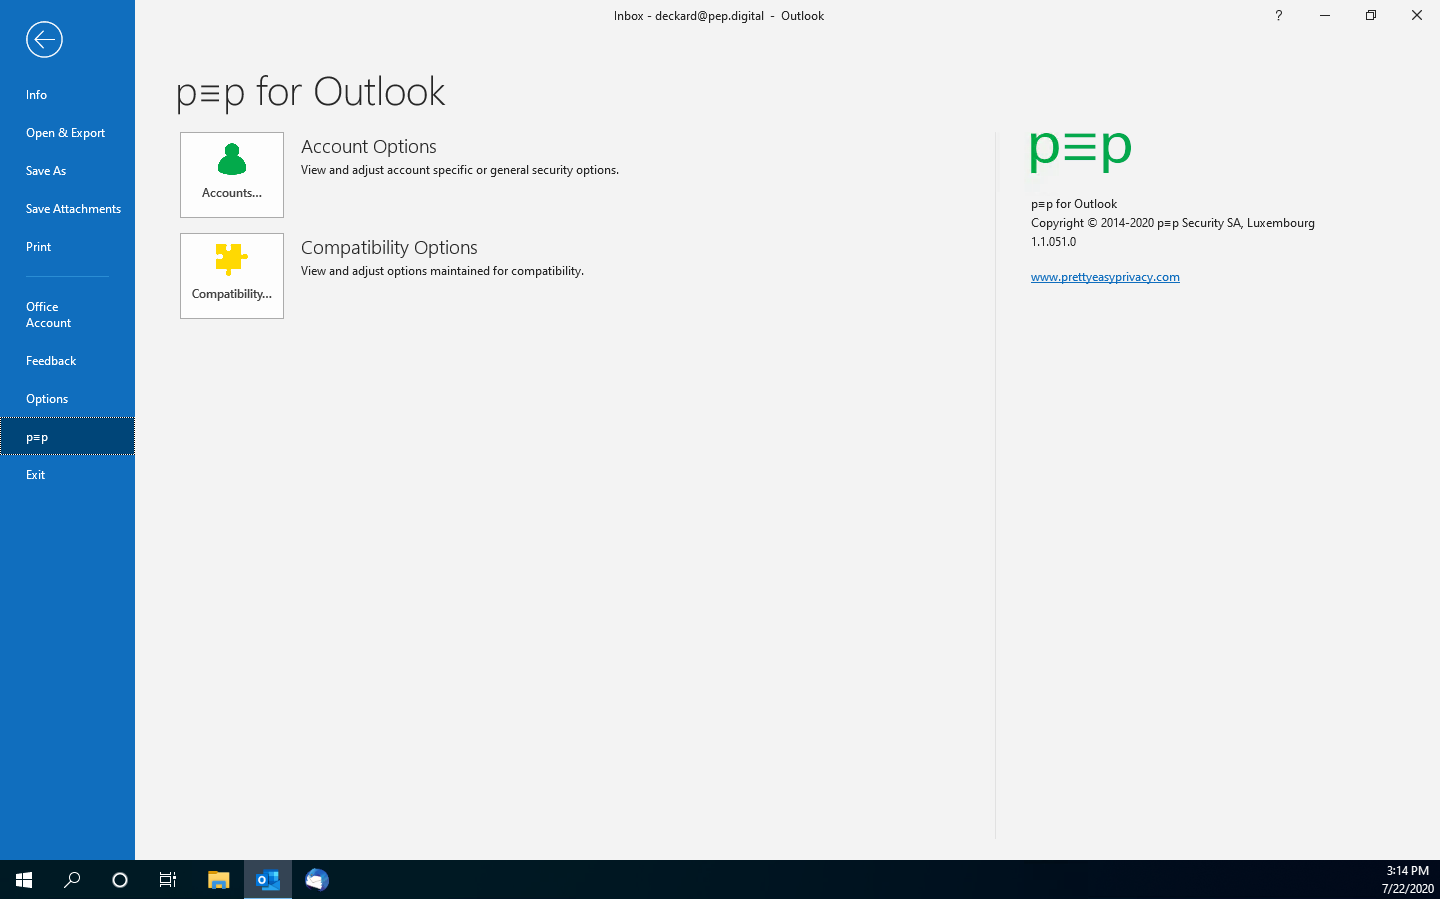 _images/pEpForOutlook-v1.1-adFile.png